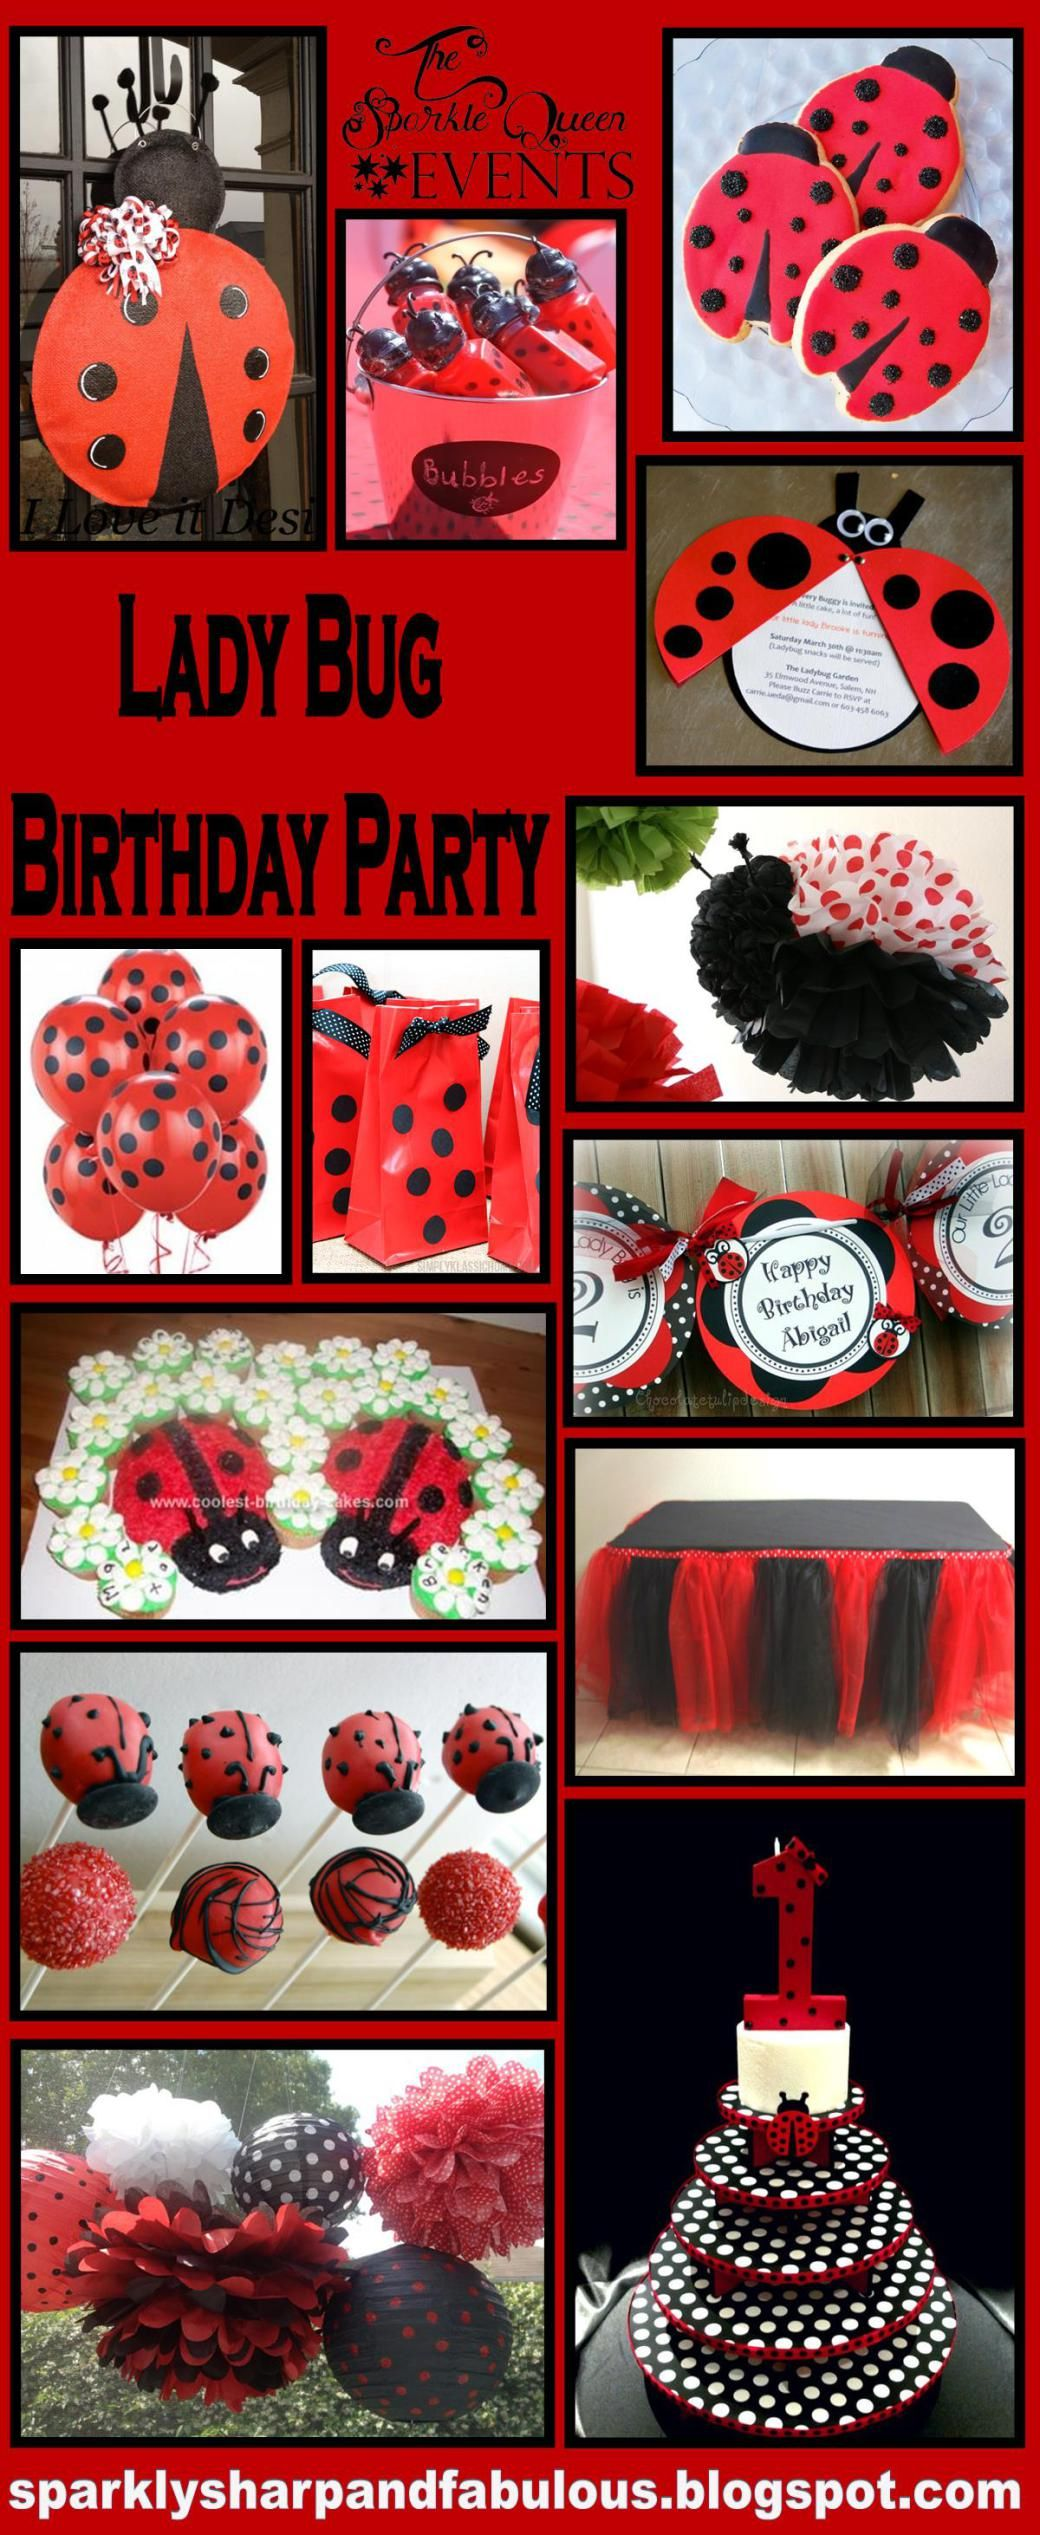 Lady Bug Birthday Party Ideas | party creations | Pinterest | Lady ...